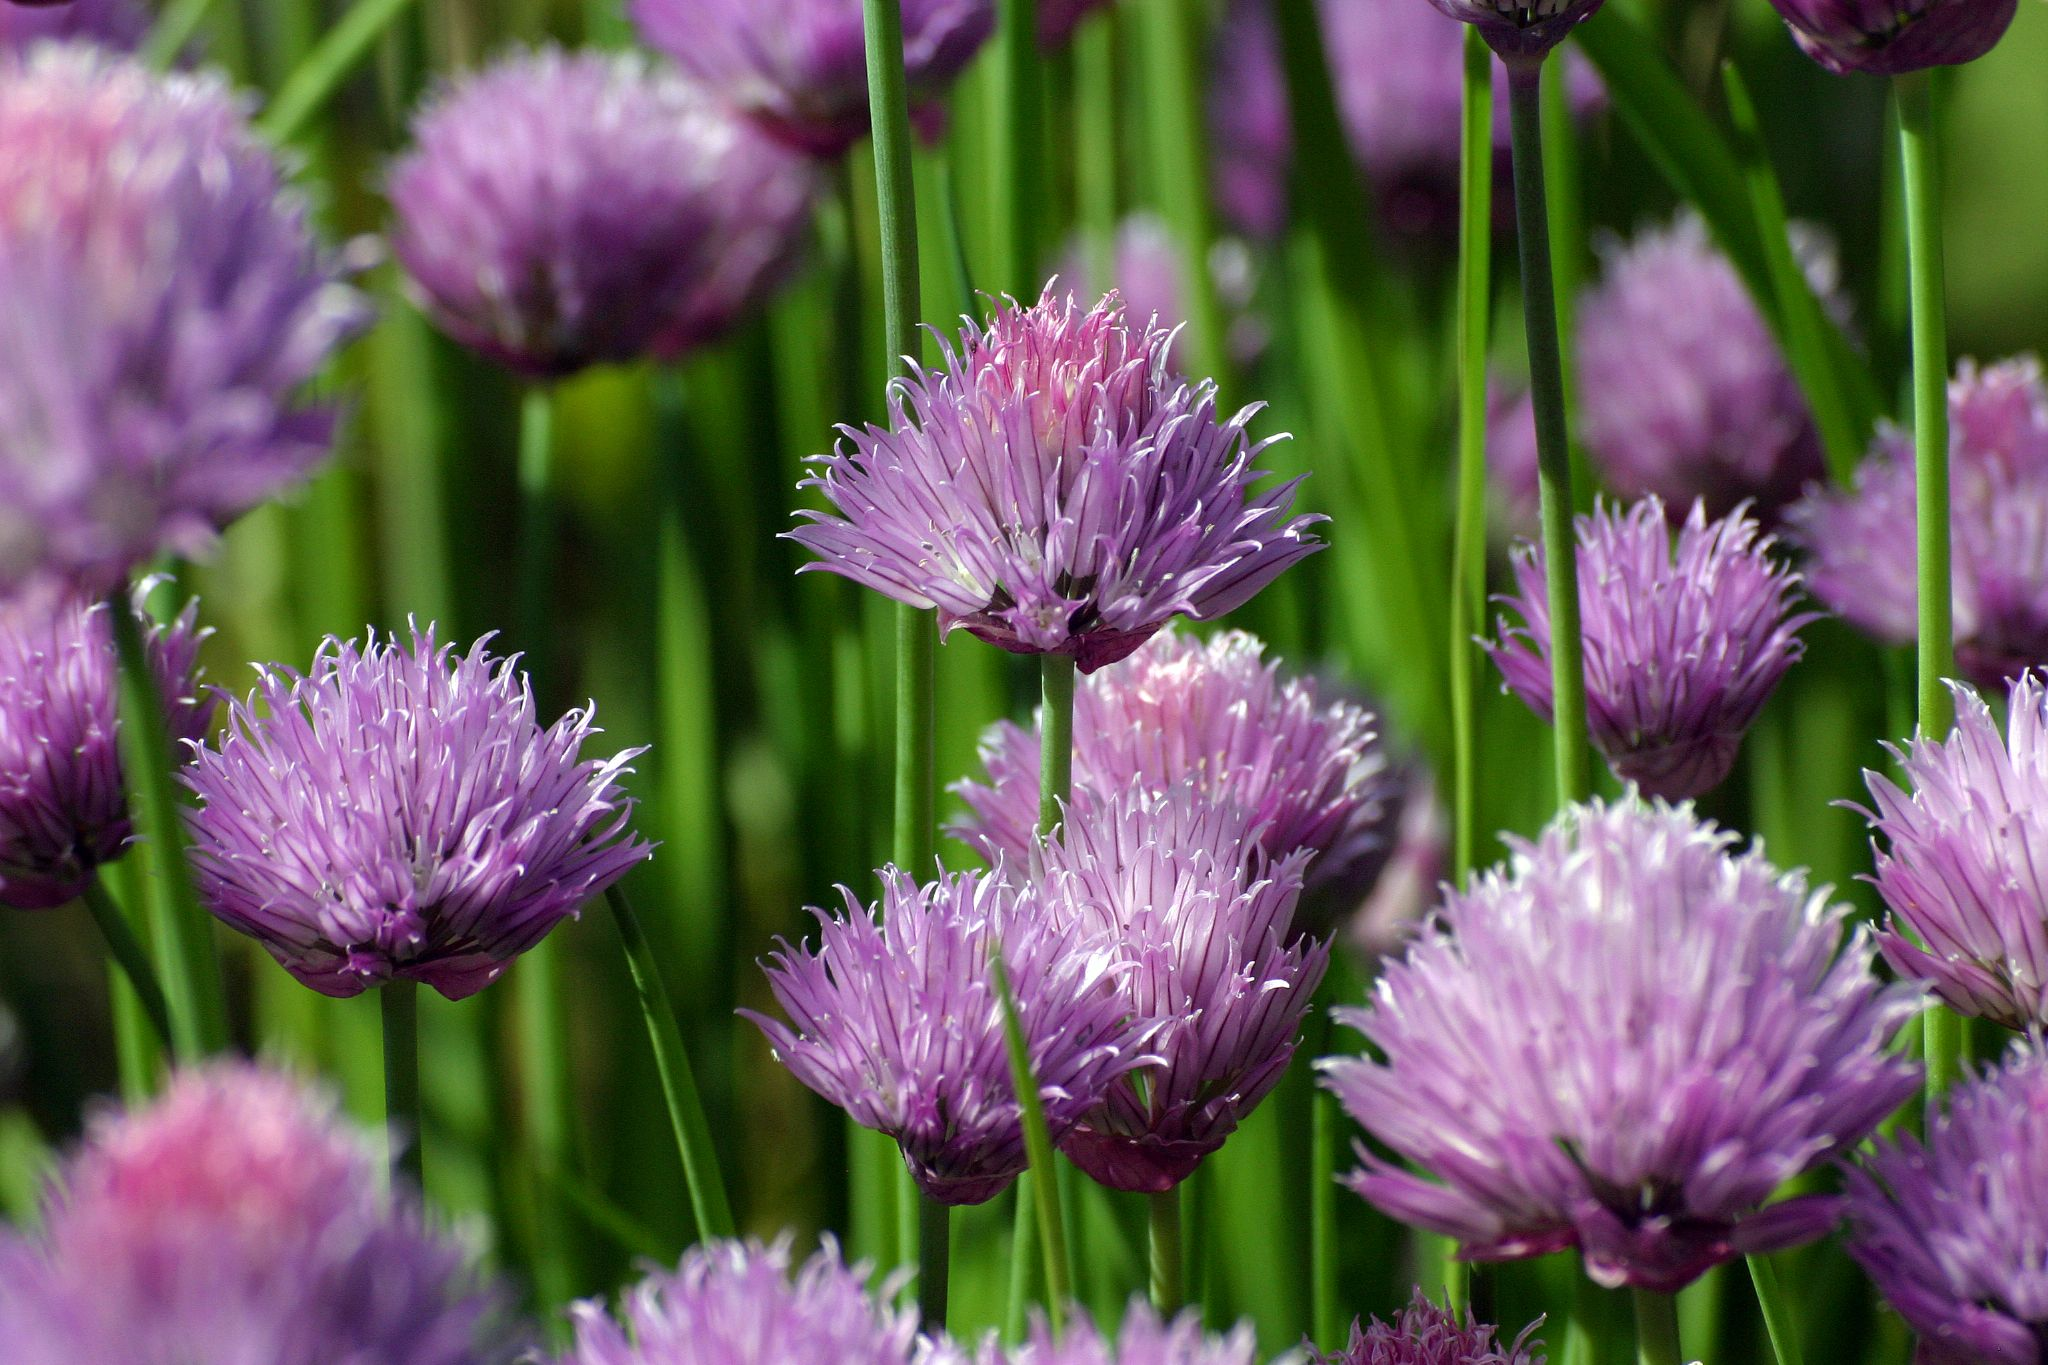 chives by monanorrman